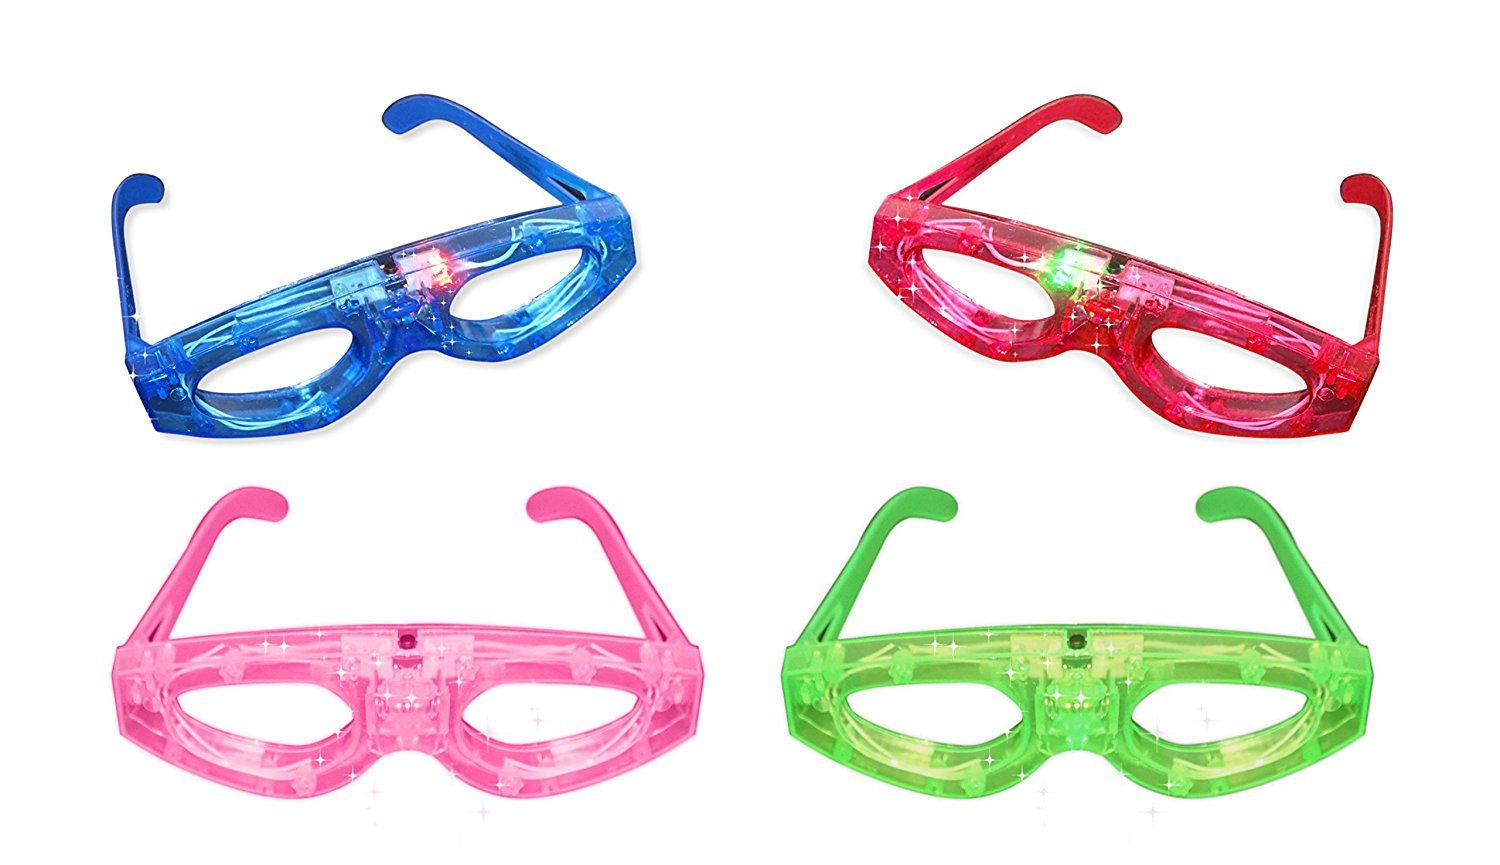 12ct LED Light Up Sunglasses - Flashing Multi Colored Led Glasses BEST PARTY FAVORS Light Up Flashing Glasses For Children (Mask)